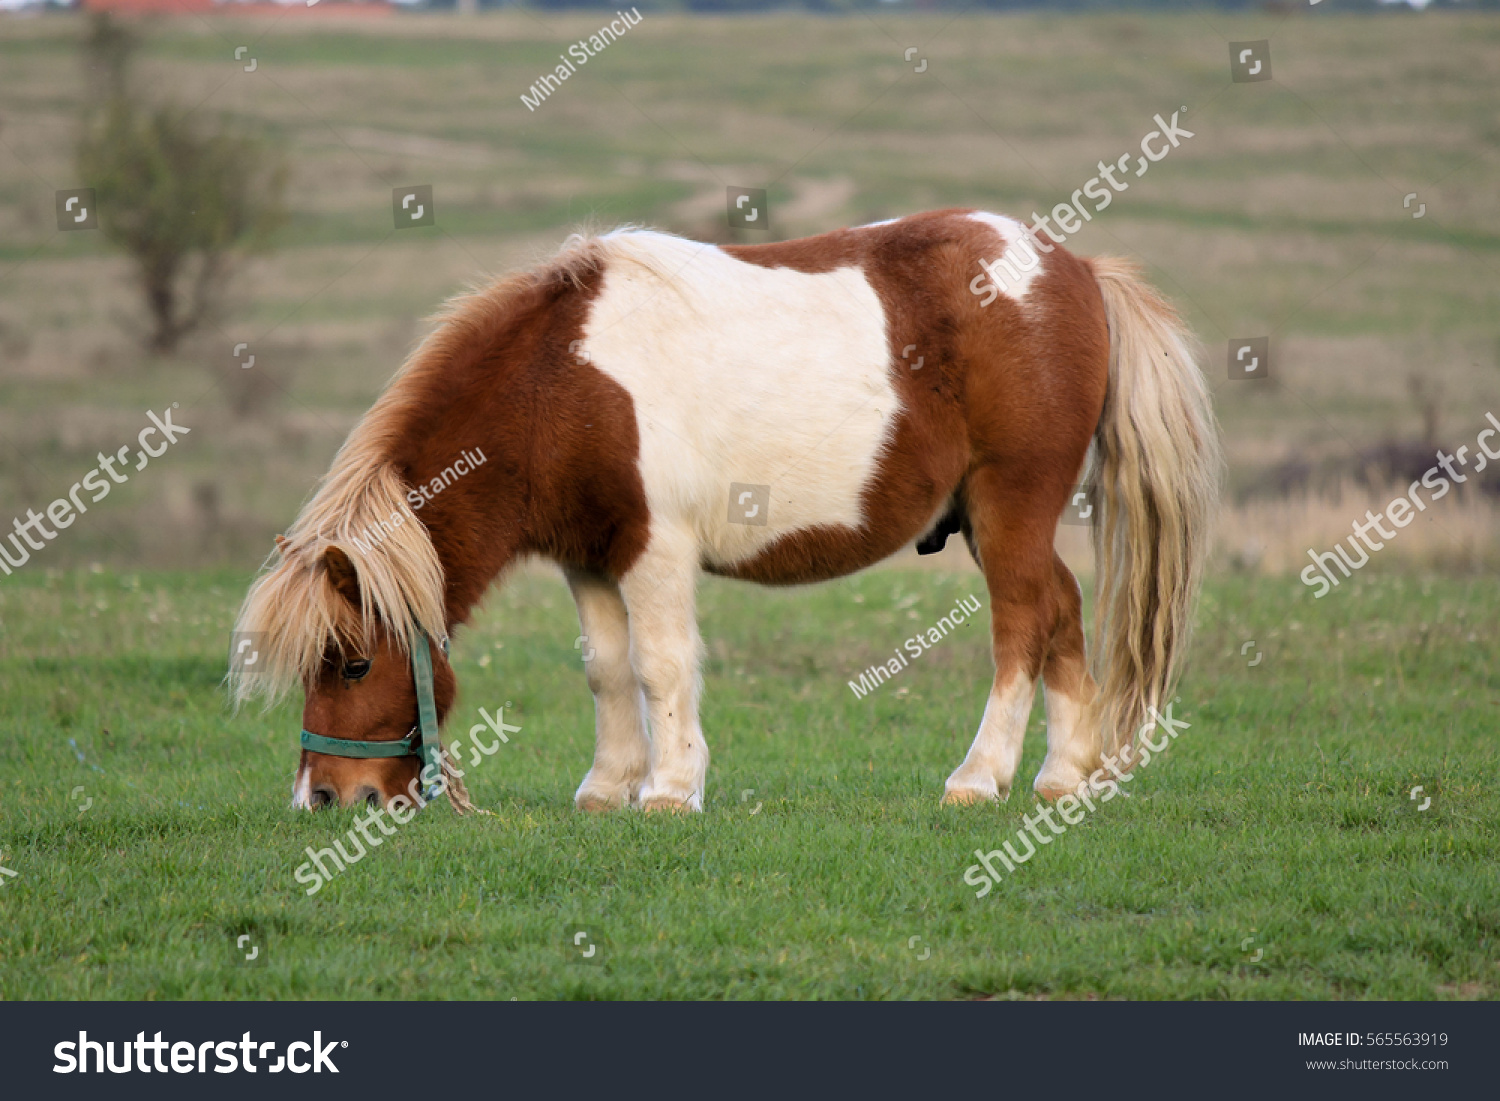 Uncategorized Picture Of A Pony portrait pony photo shoot attitude stock 565563919 of a with an shot in